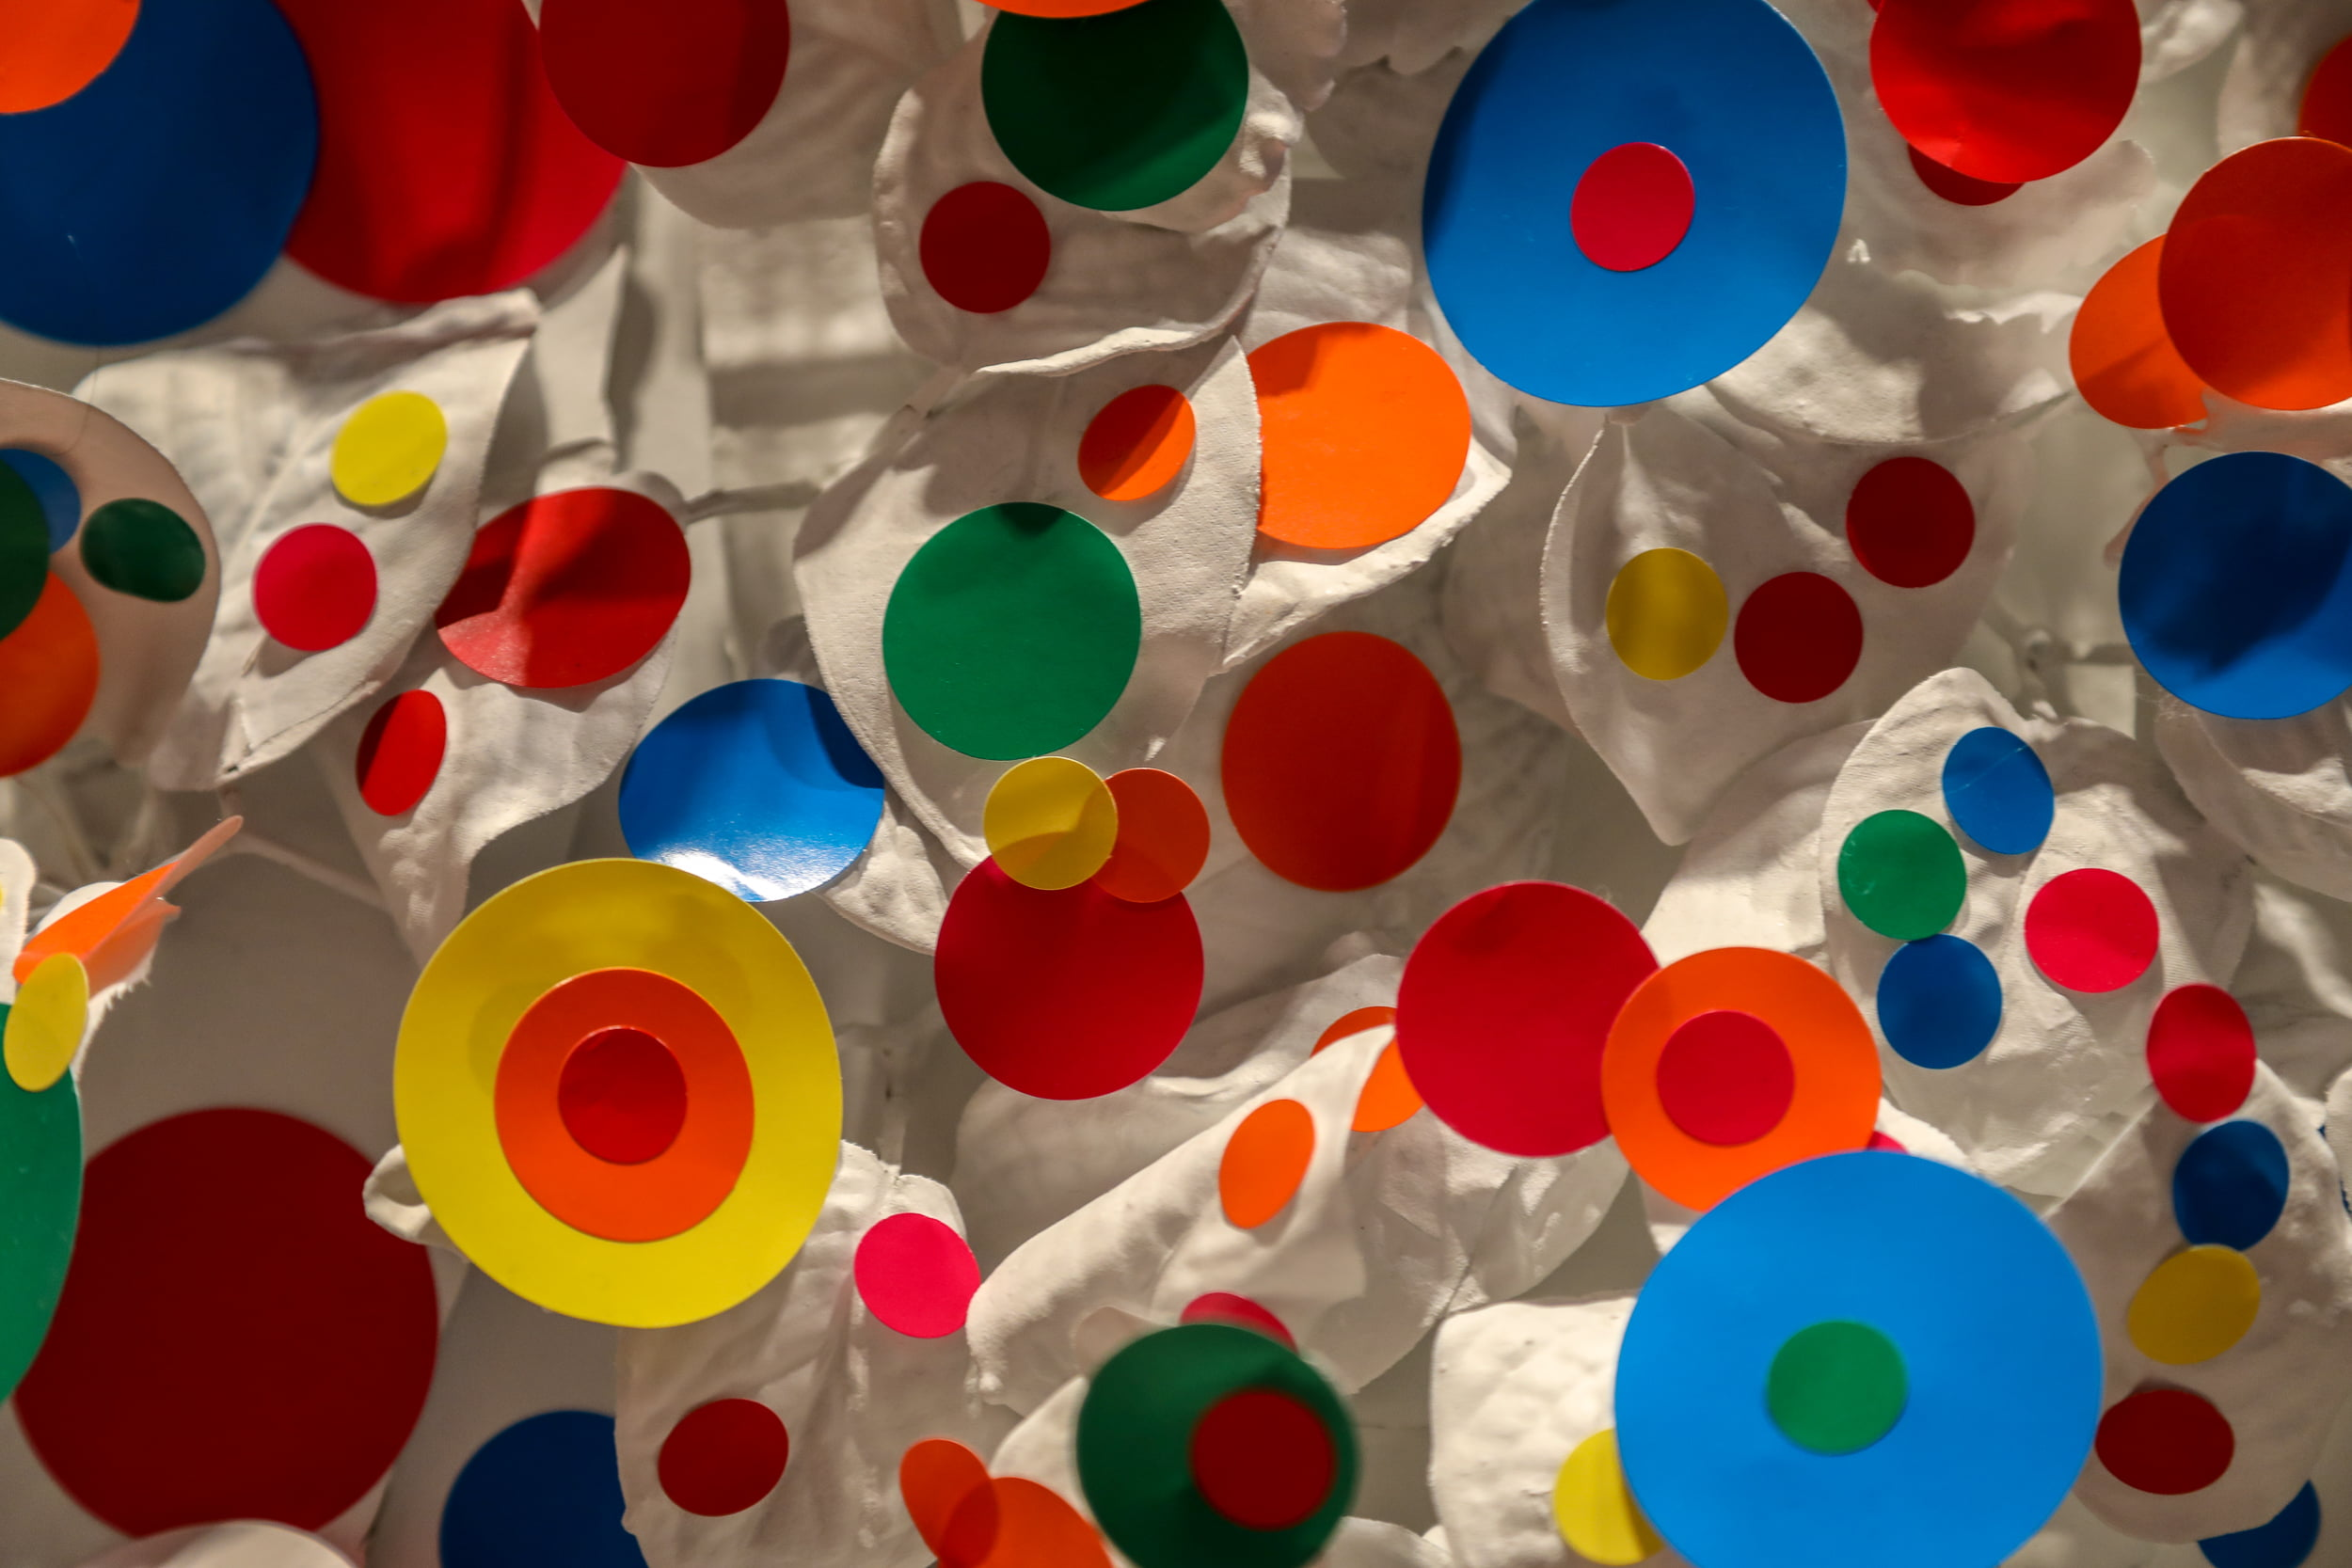 Inifity Mirrors: The Obliteration Room